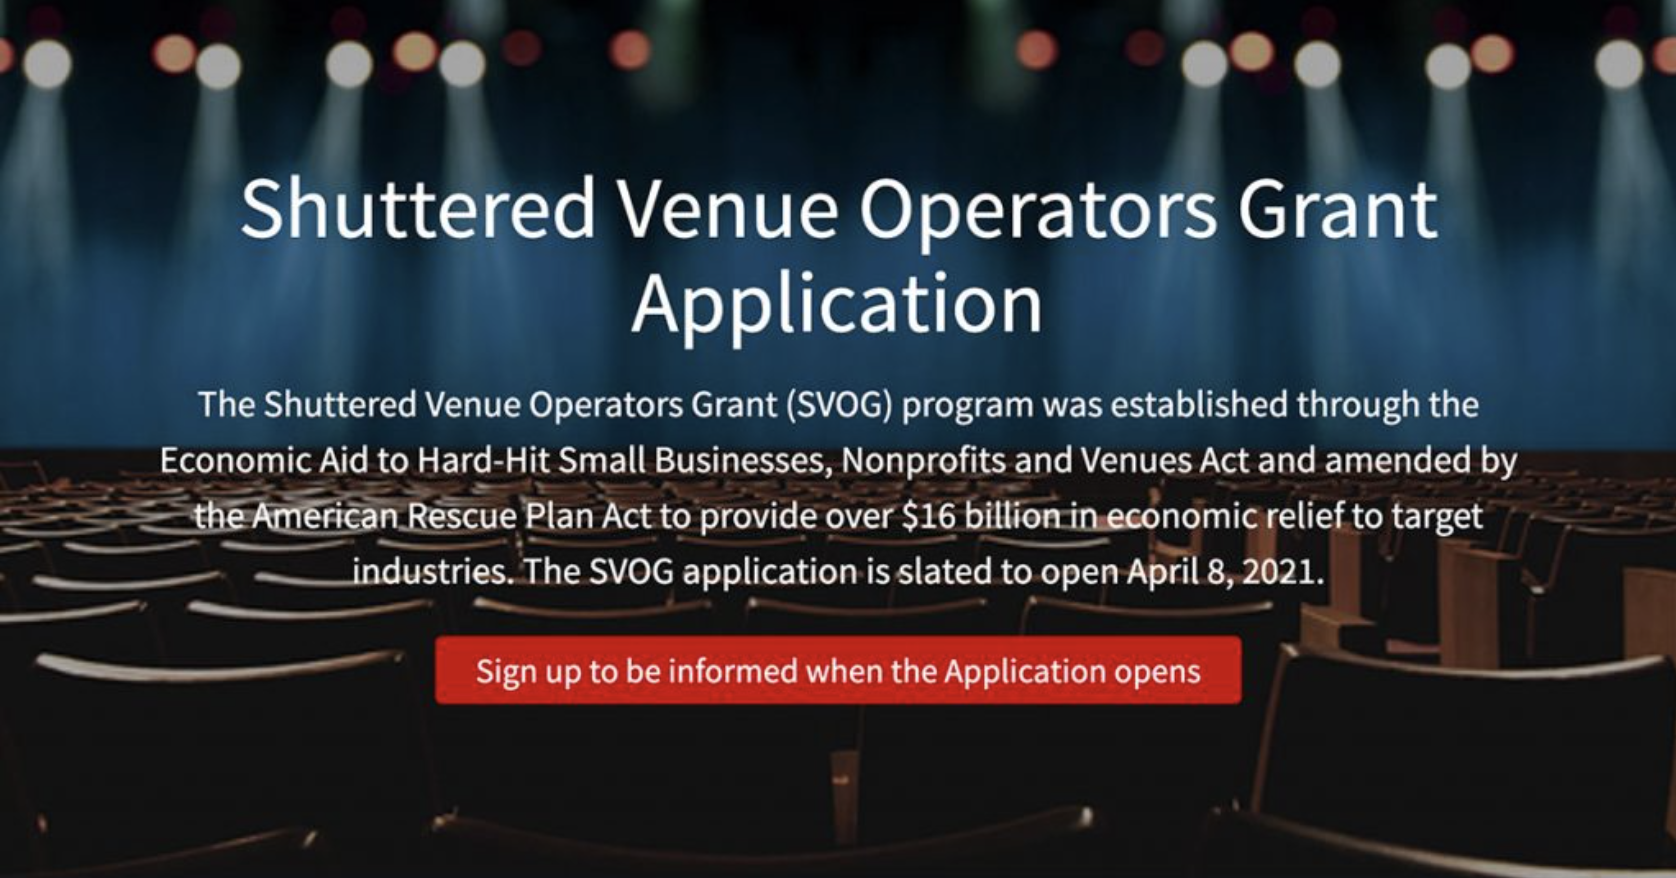 SBA Launches Portal to Begin Accepting Shuttered Venue Operators Grant Applications, April 8